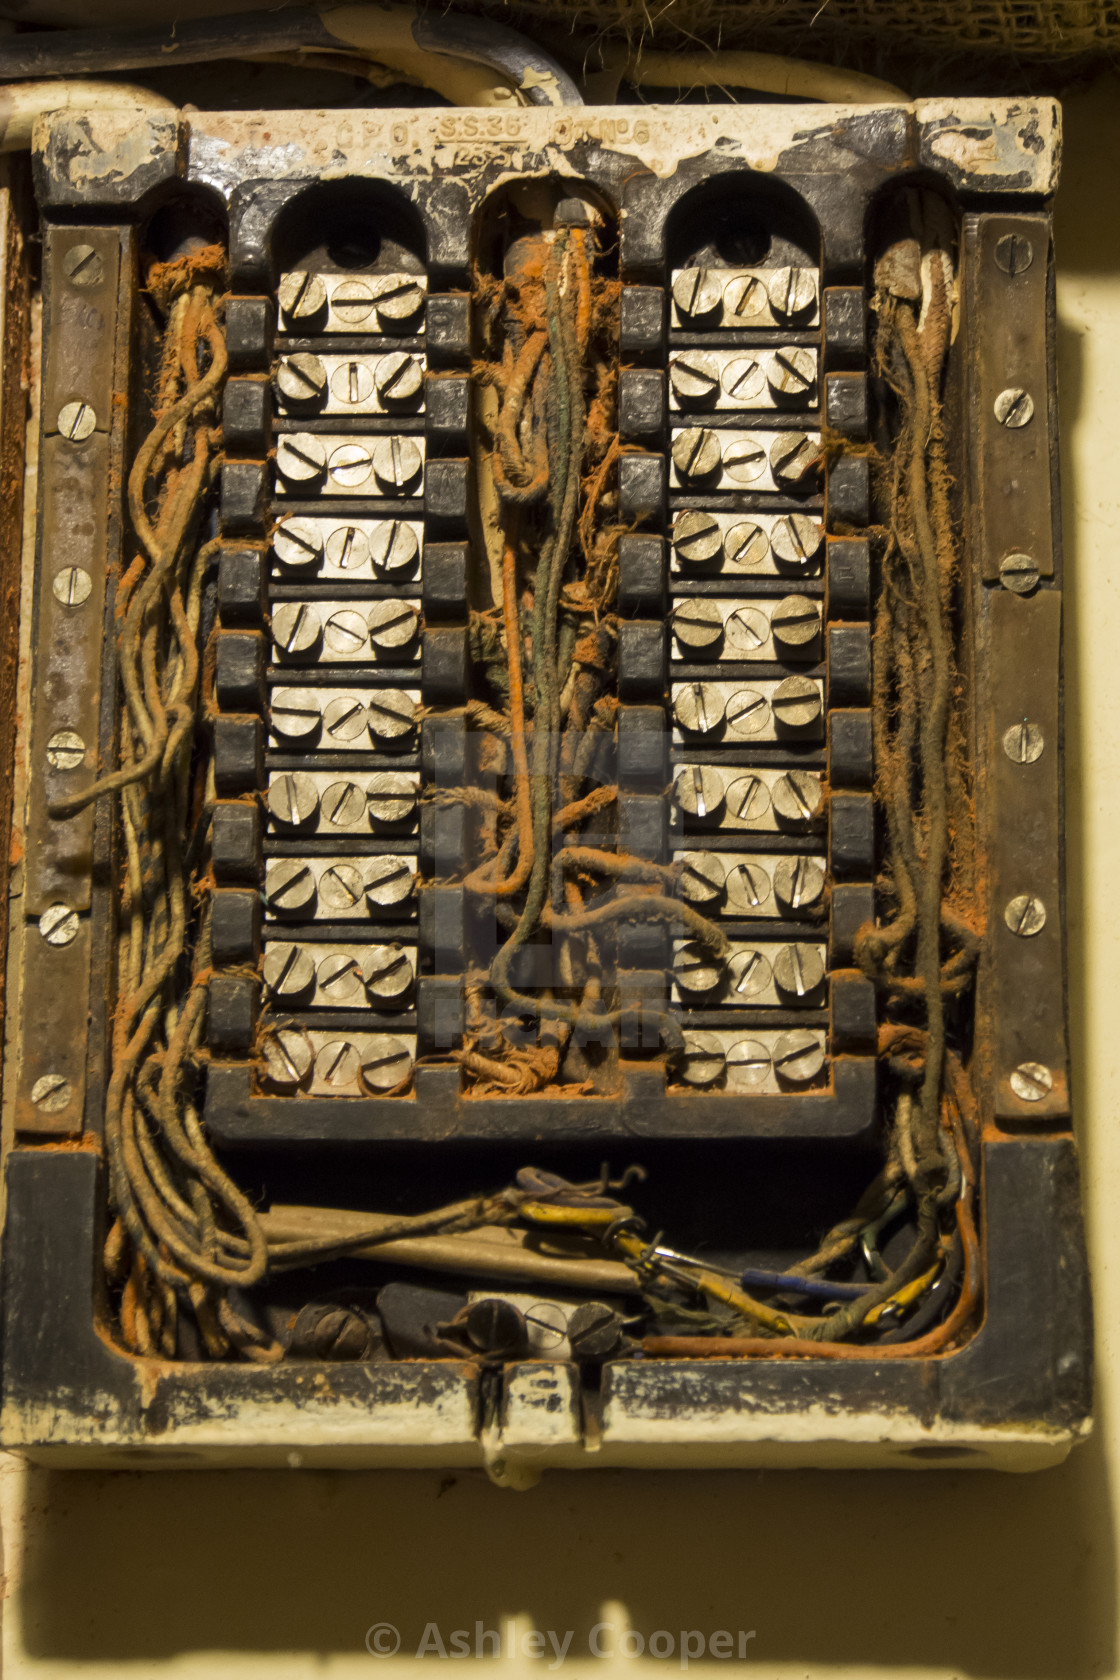 Leominster Images Picfair Search Results Old Fuse Box Help An At Berrington Hall Near Herefordshire Uk